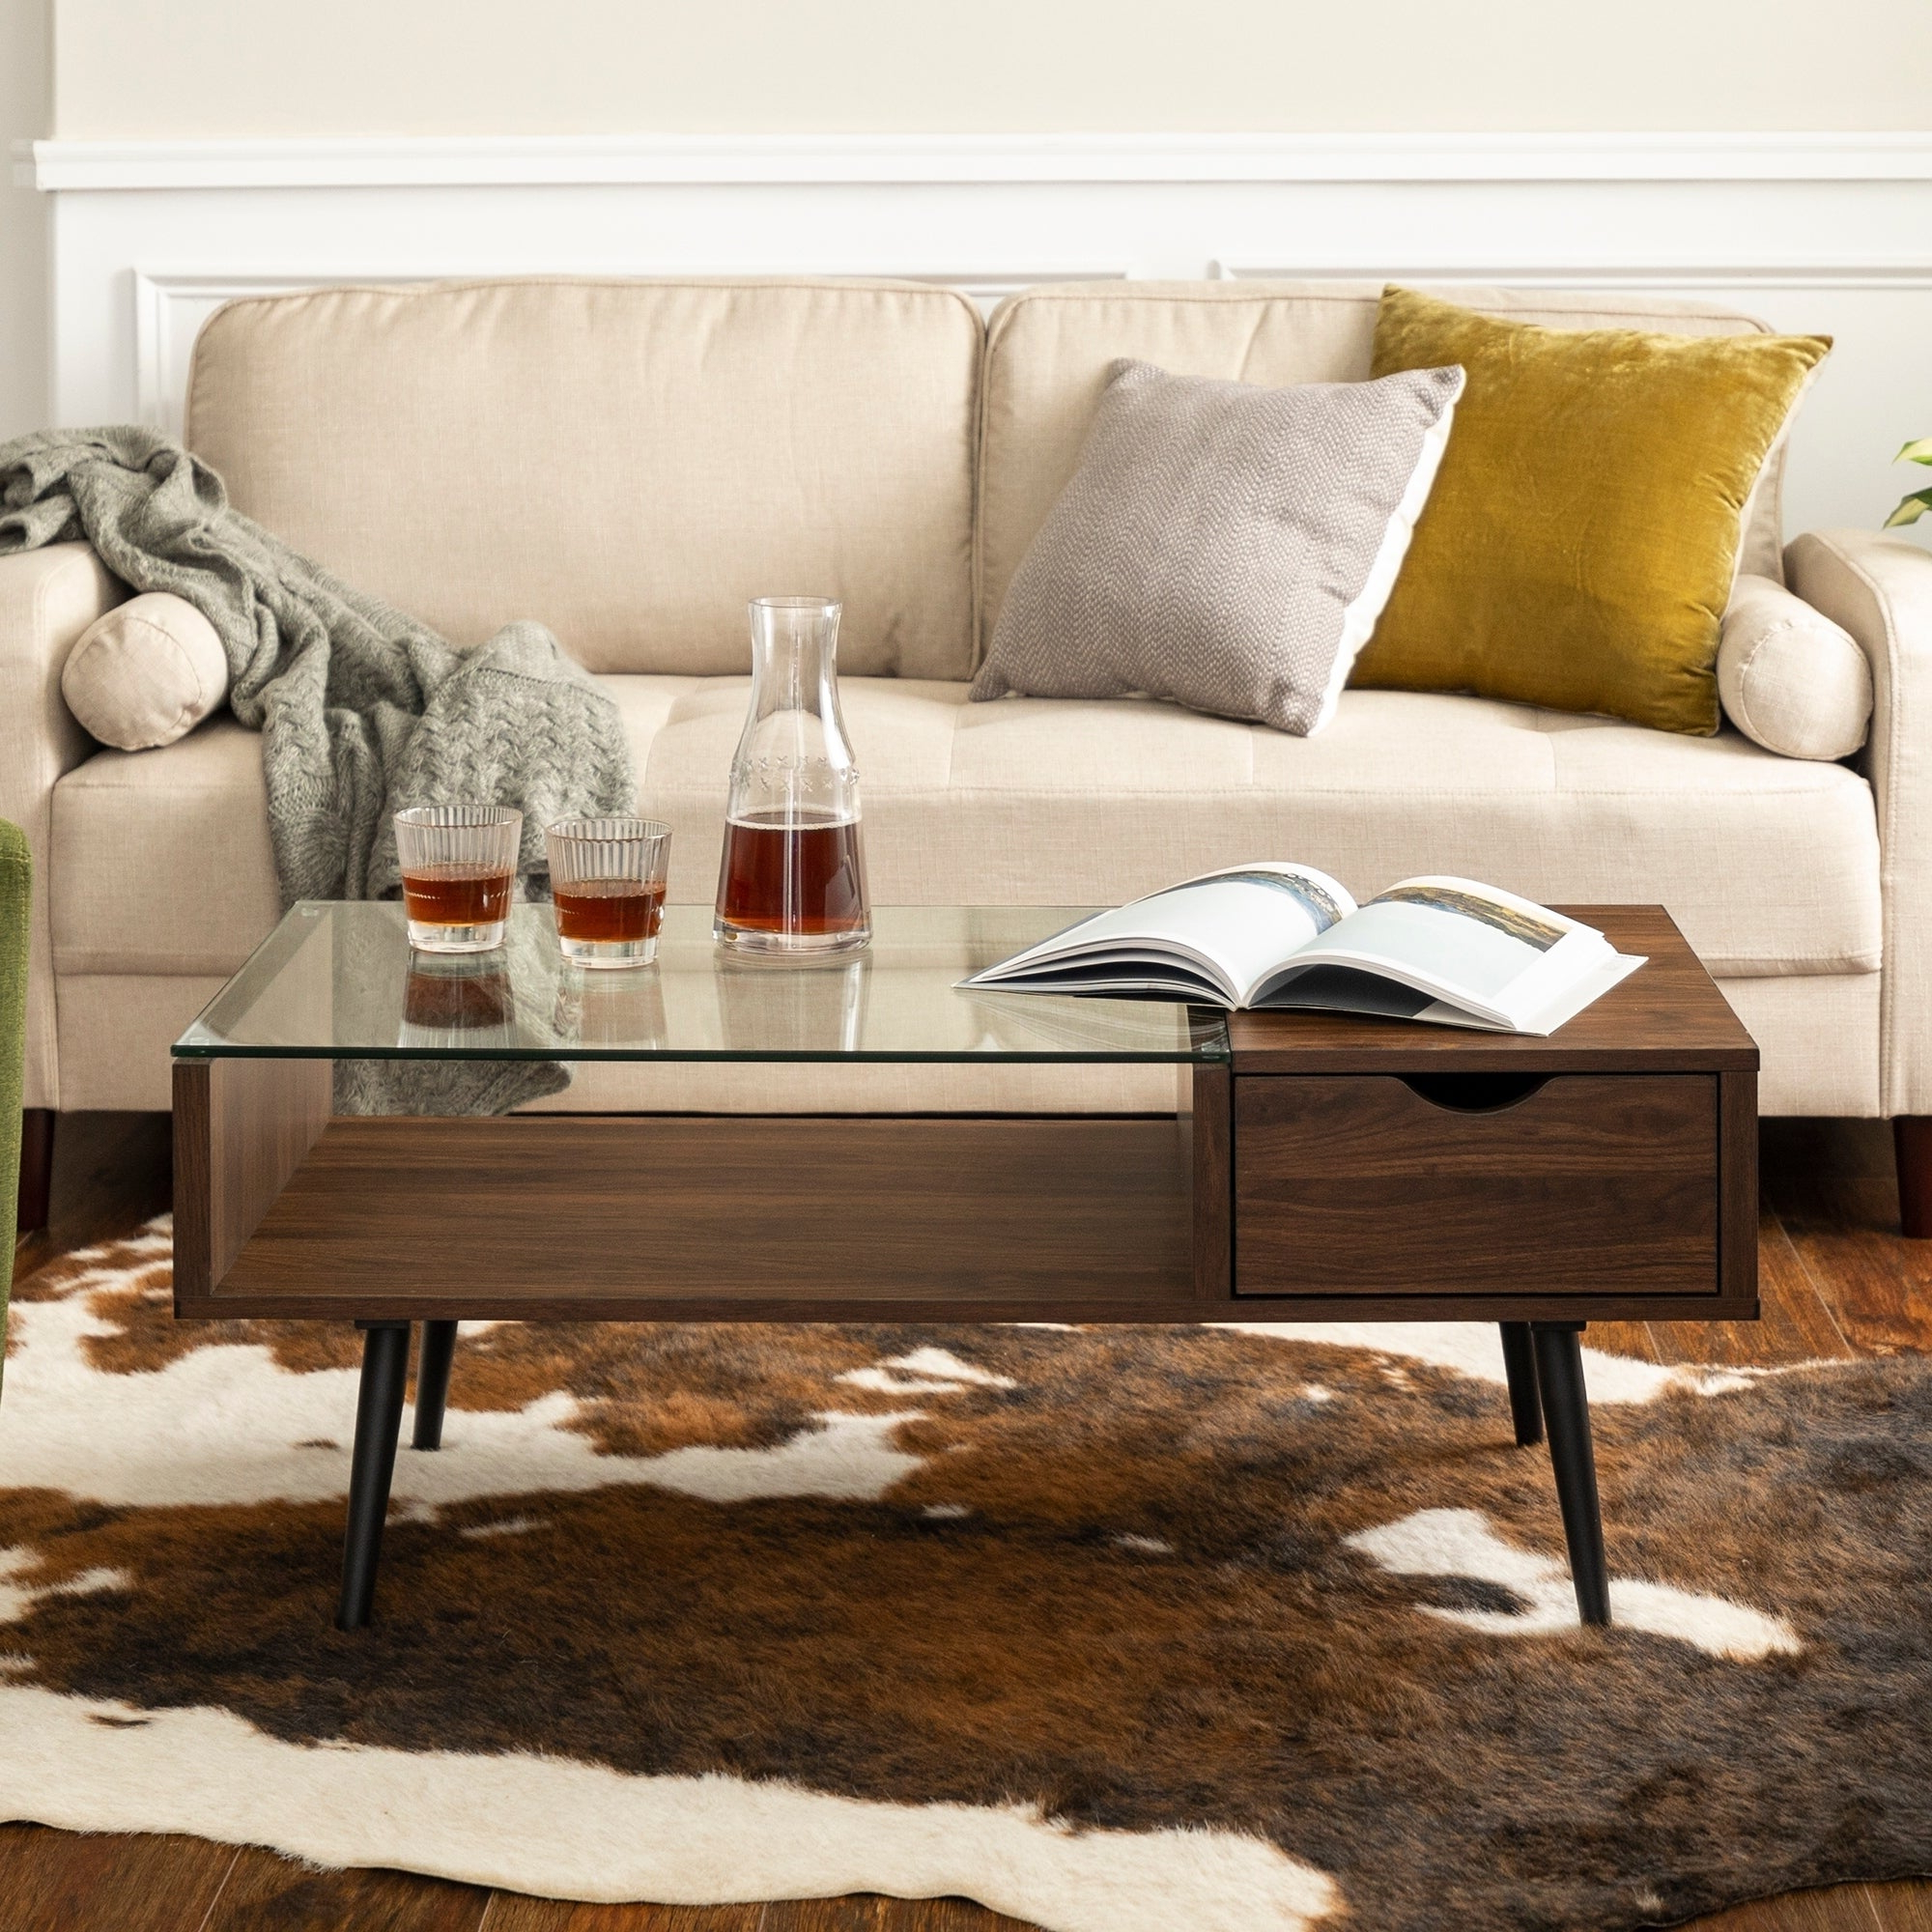 Carson Carrington Saltaro 42 Inch Mid Century Glass Top Coffee Table – 42 X  22 X 18H With Widely Used Carson Carrington Astro Mid Century Coffee Tables (View 9 of 20)